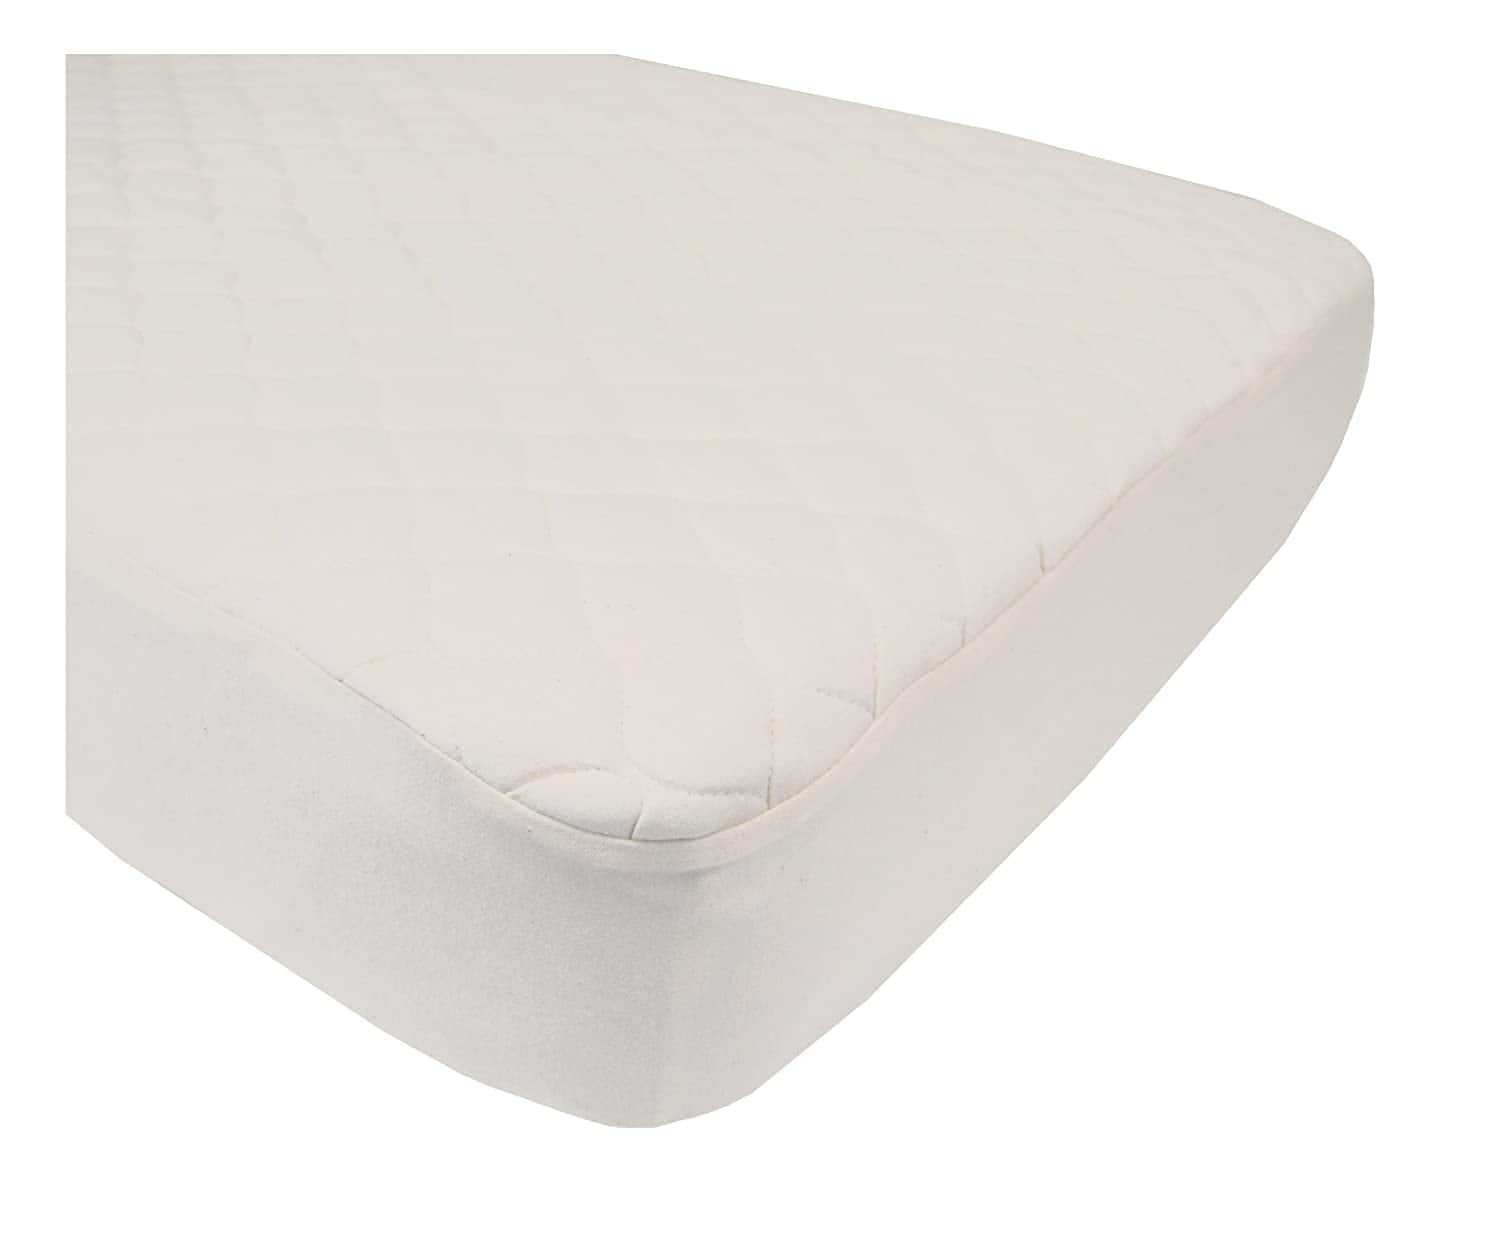 American Baby Company Waterproof Fitted Crib Protective Mattress Pad Cover